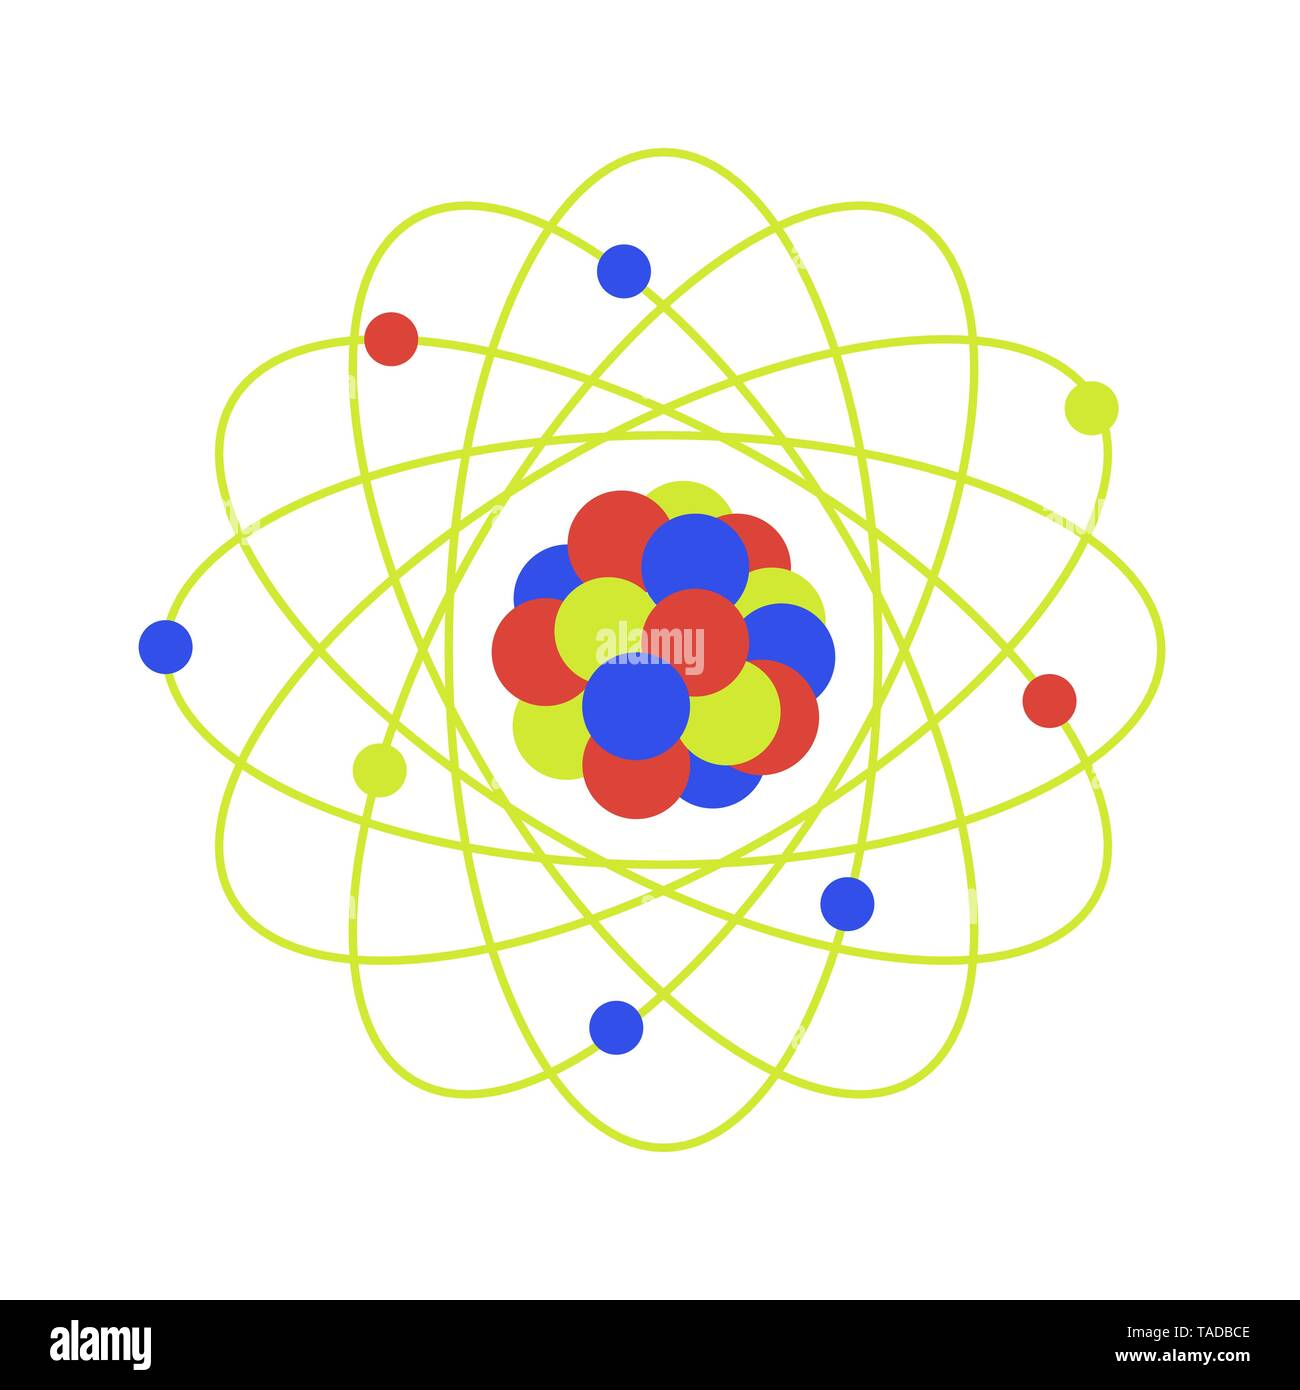 vector illustration with atomic structure print with symbol of nuclear energy scientific research molecular chemistry education science day chem stock vector image art alamy https www alamy com vector illustration with atomic structure print with symbol of nuclear energy scientific research molecular chemistry education science day chem image247386062 html